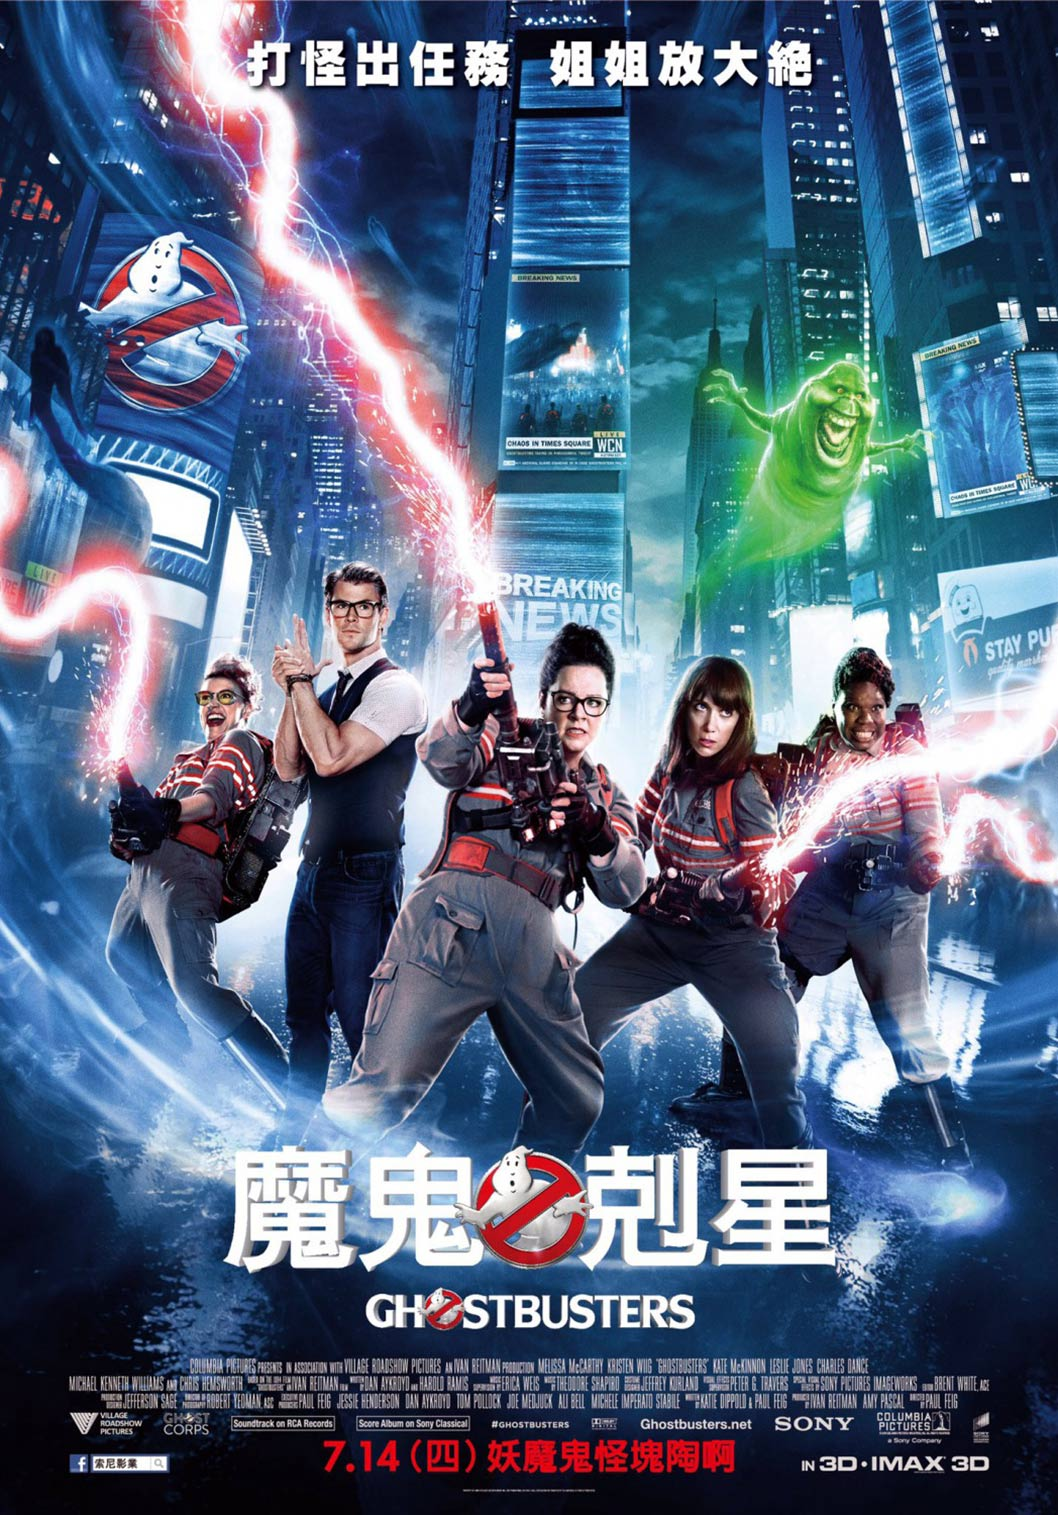 Ghostbusters Poster #7